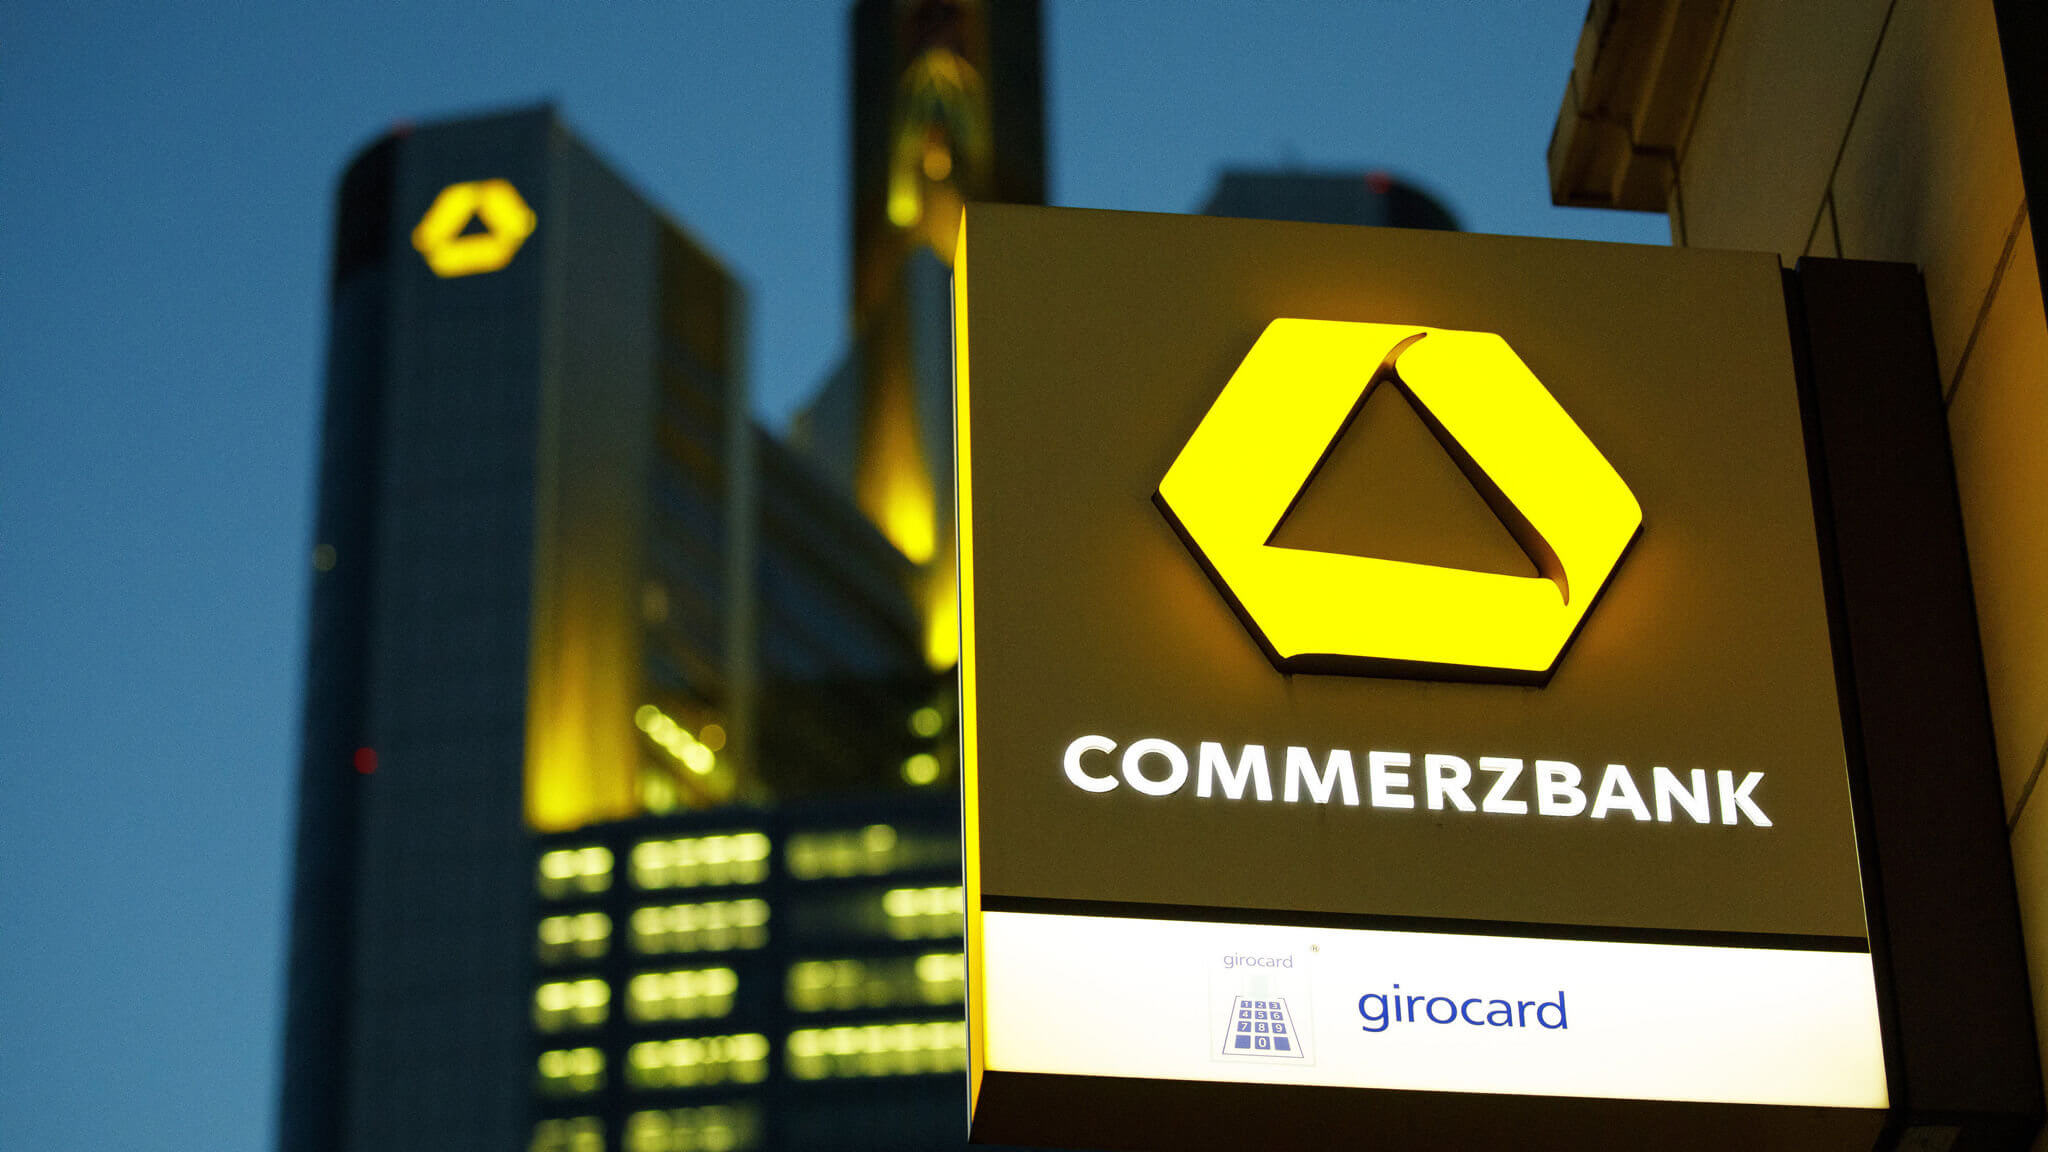 Commerzbank to stop outsourcing project with HSBC